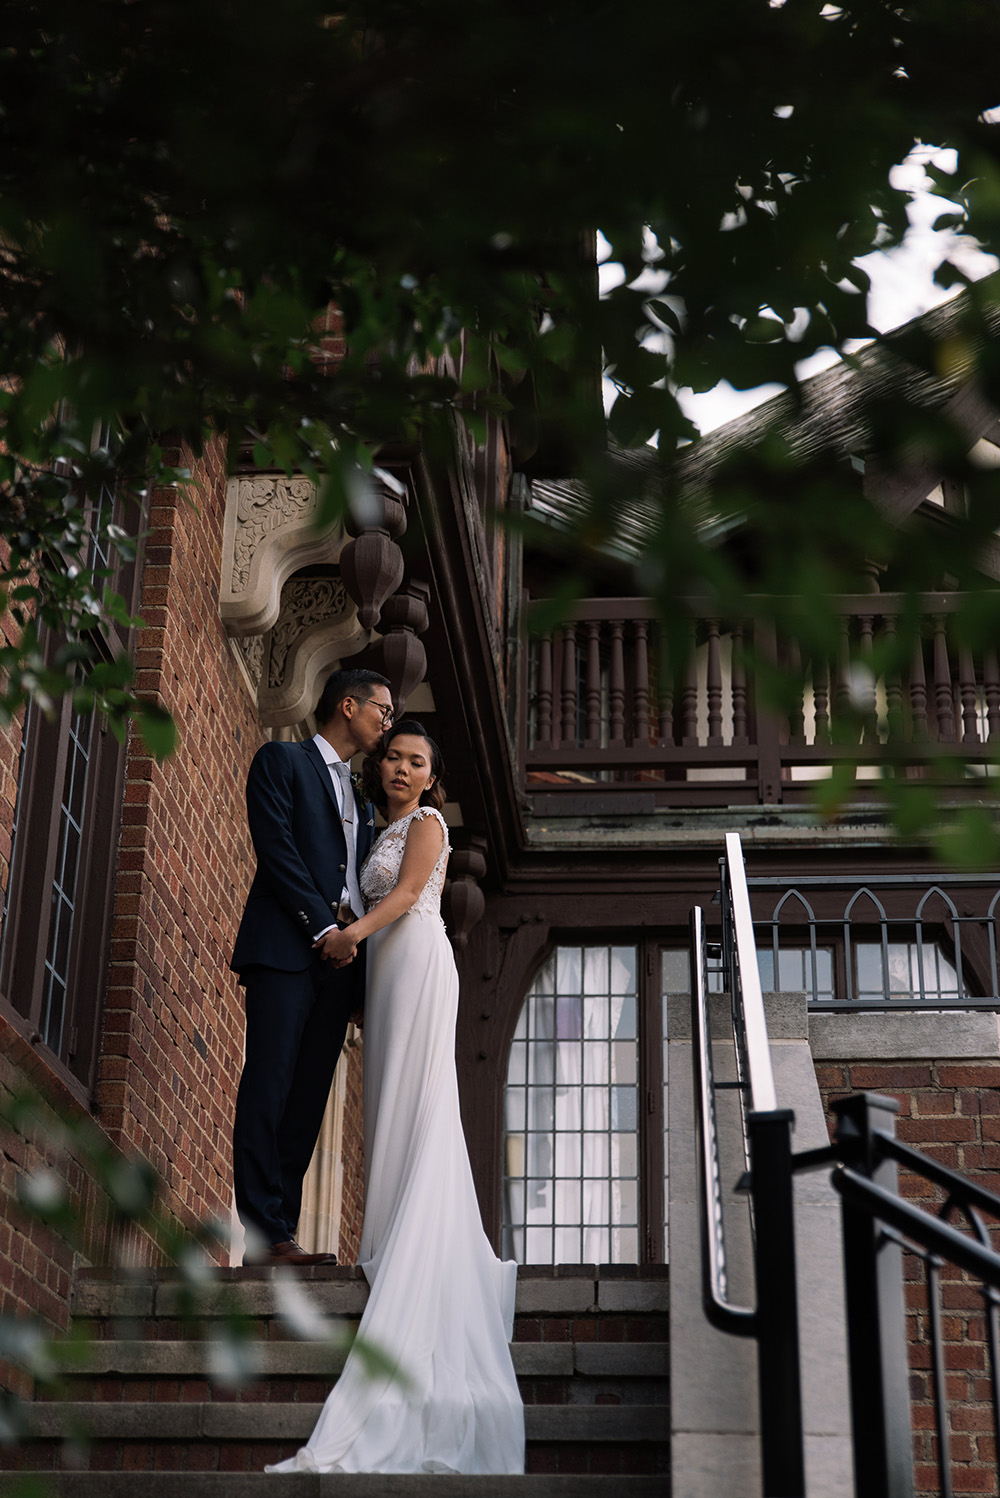 Best Des Moines Wedding Venues | A Wedding Photographer's Guide